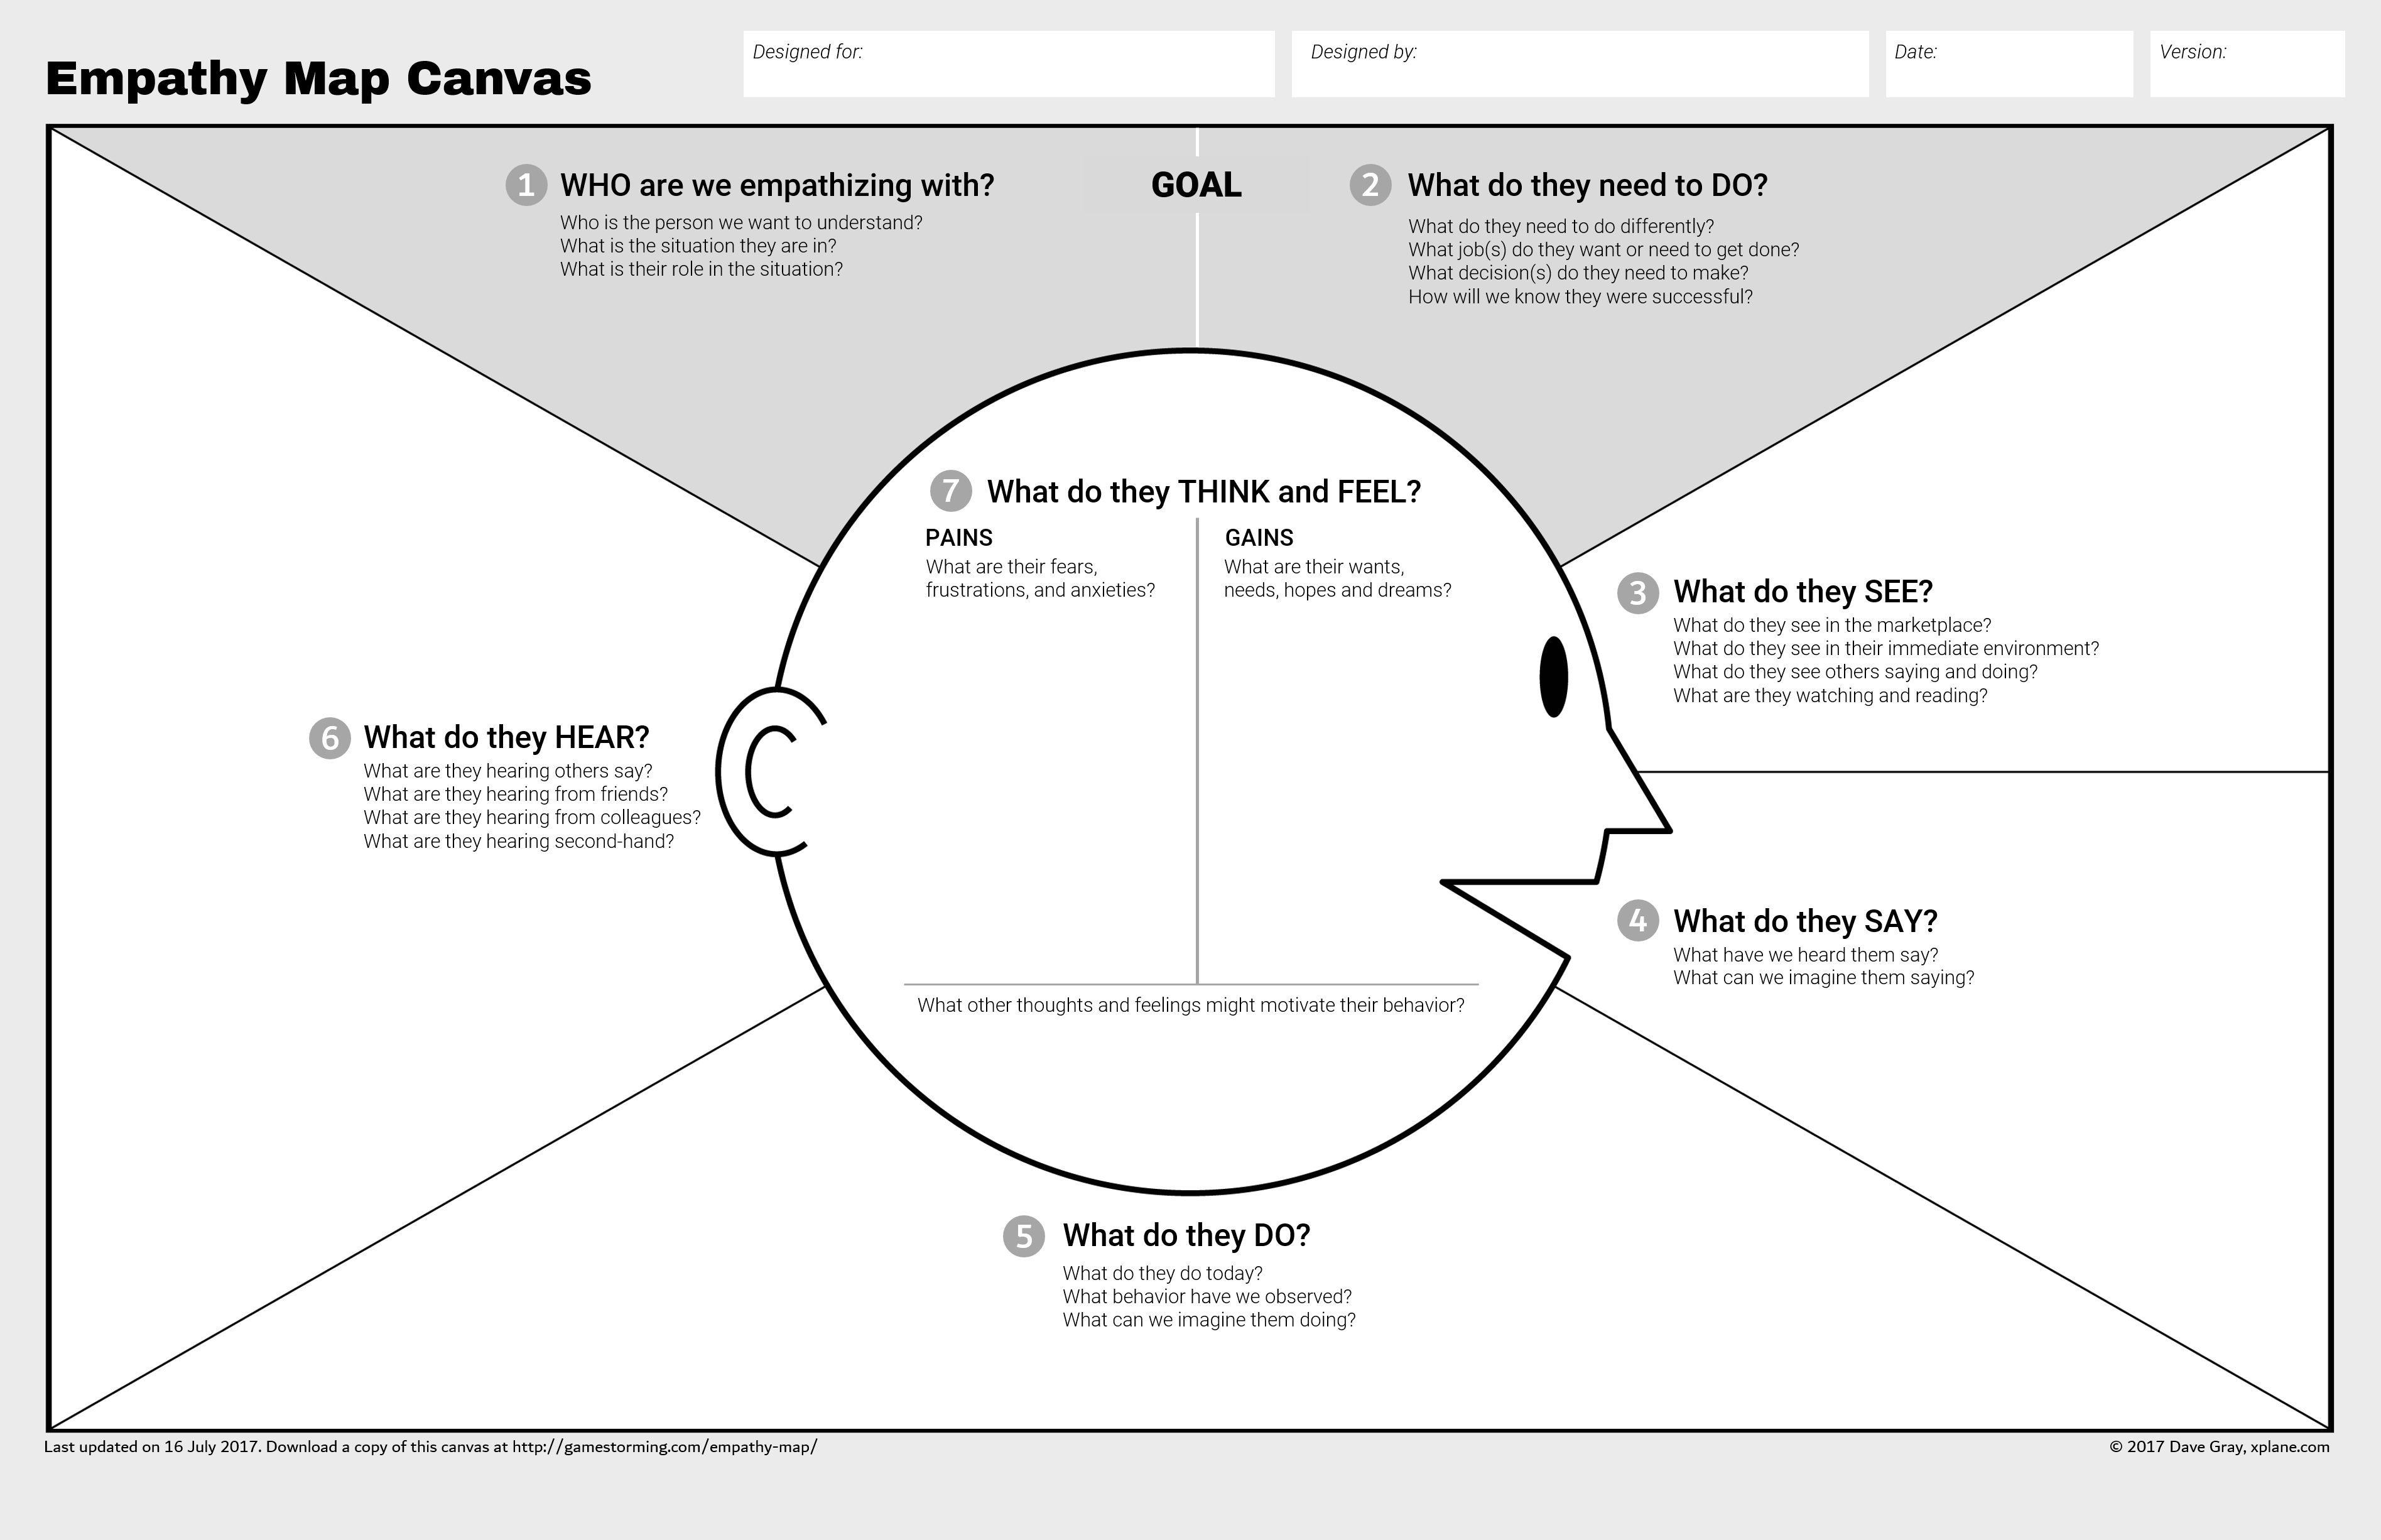 Empathy Mapping: A Guide to Getting Inside a User's Head